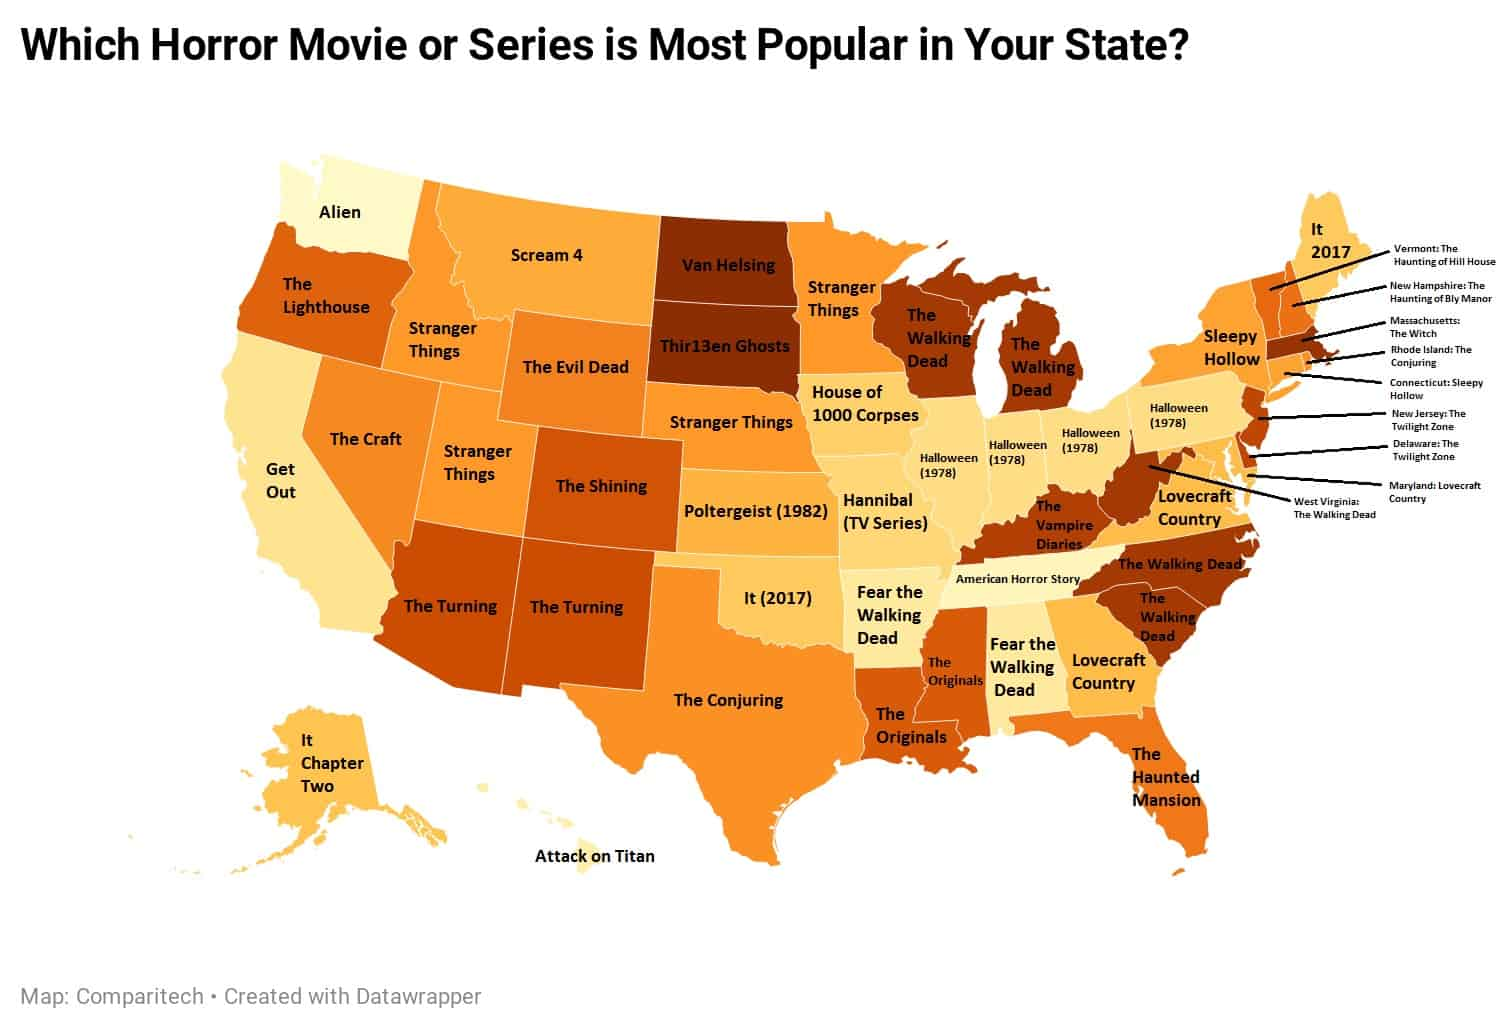 Most popular horror films in each state